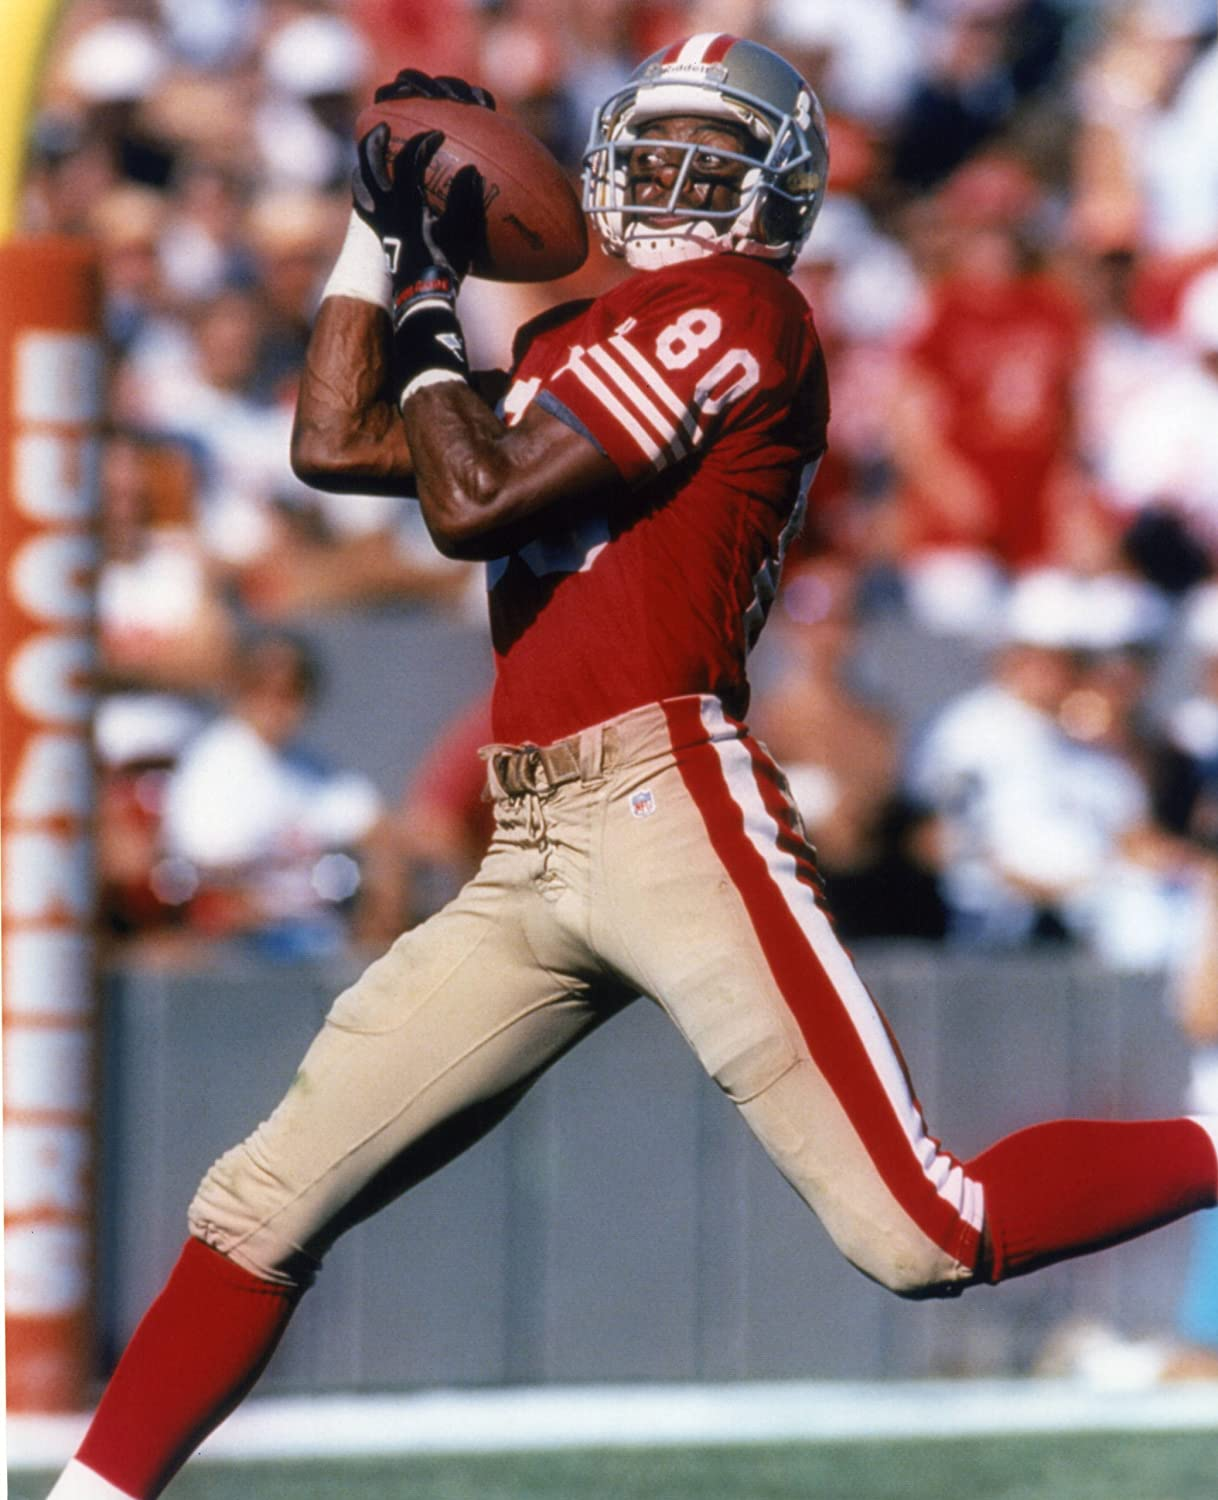 Amazon Com Jerry Rice San Francisco 49ers 8x10 Sports Action Photo G Sports Fan Photographs Sports Outdoors